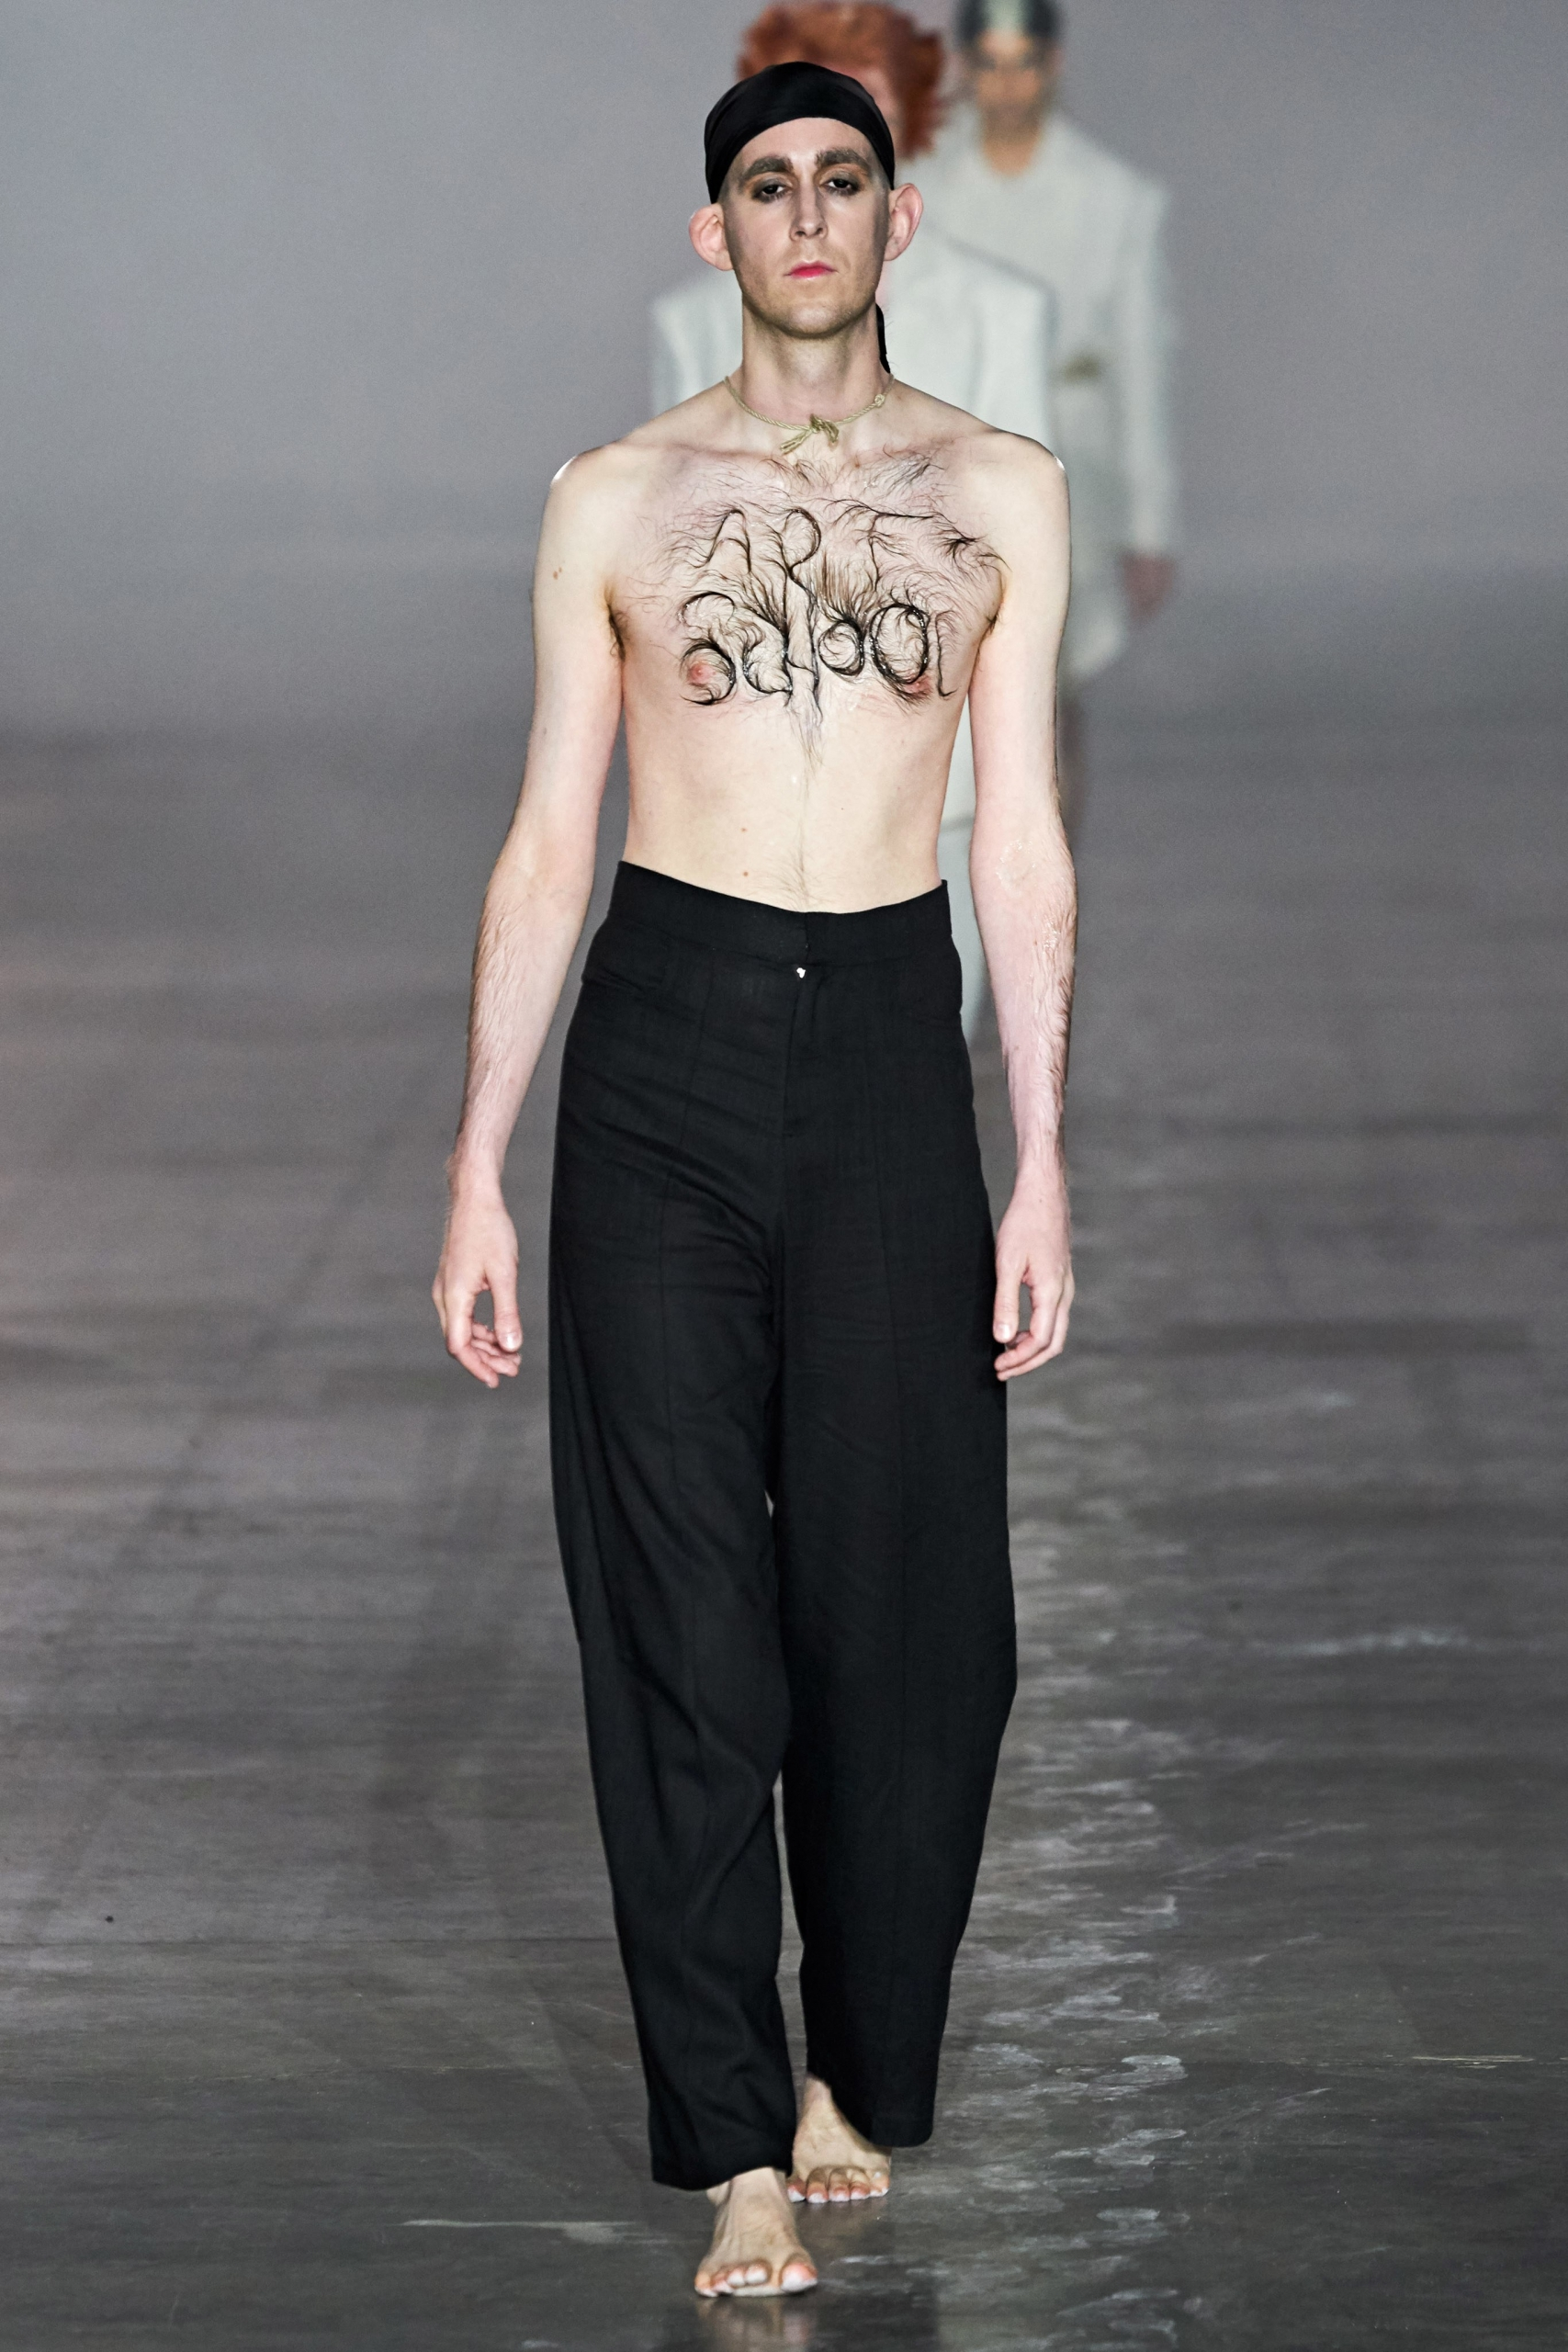 London Fashion Week: Art School creó arte con vello corporal para su colección AW 2020